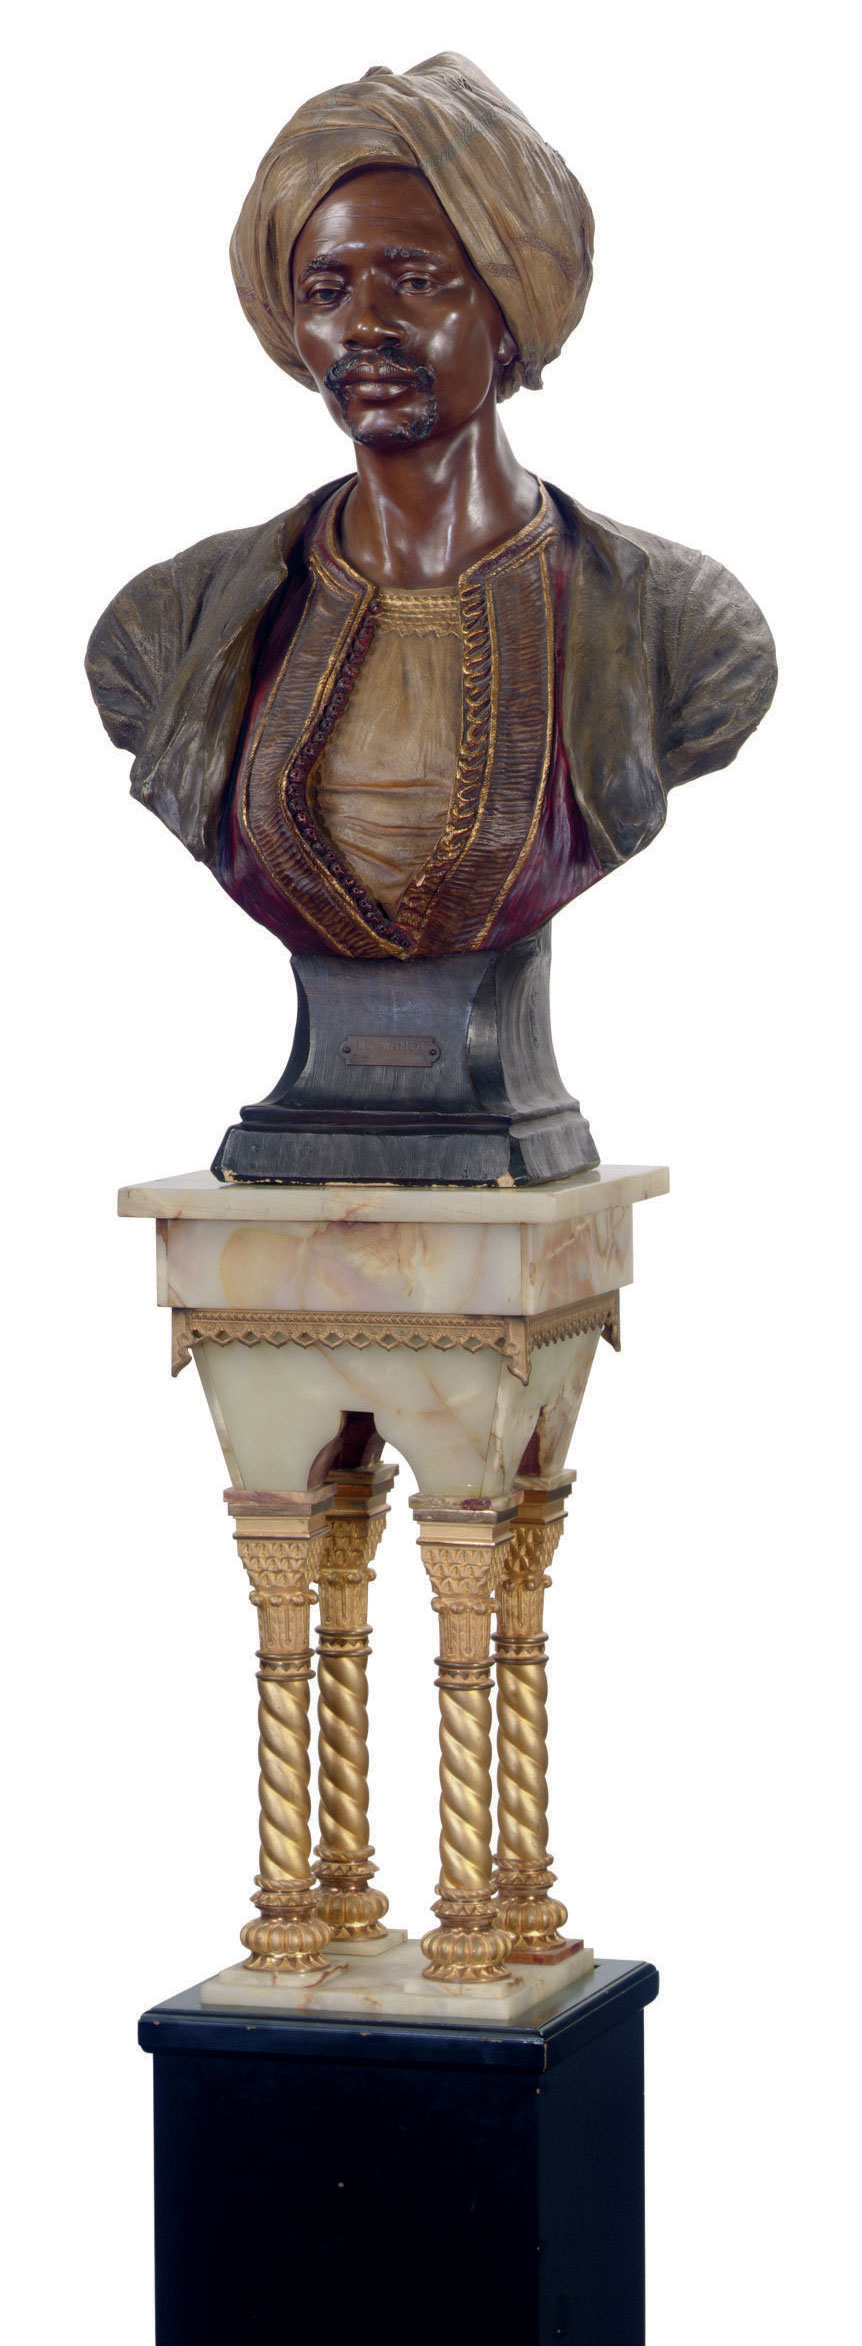 AN AUSTRIAN POLYCHROME-PATINATED TERRACOTTA BUST OF A MOOR ENTITLED 'LE MAHDI', ON PEDESTAL